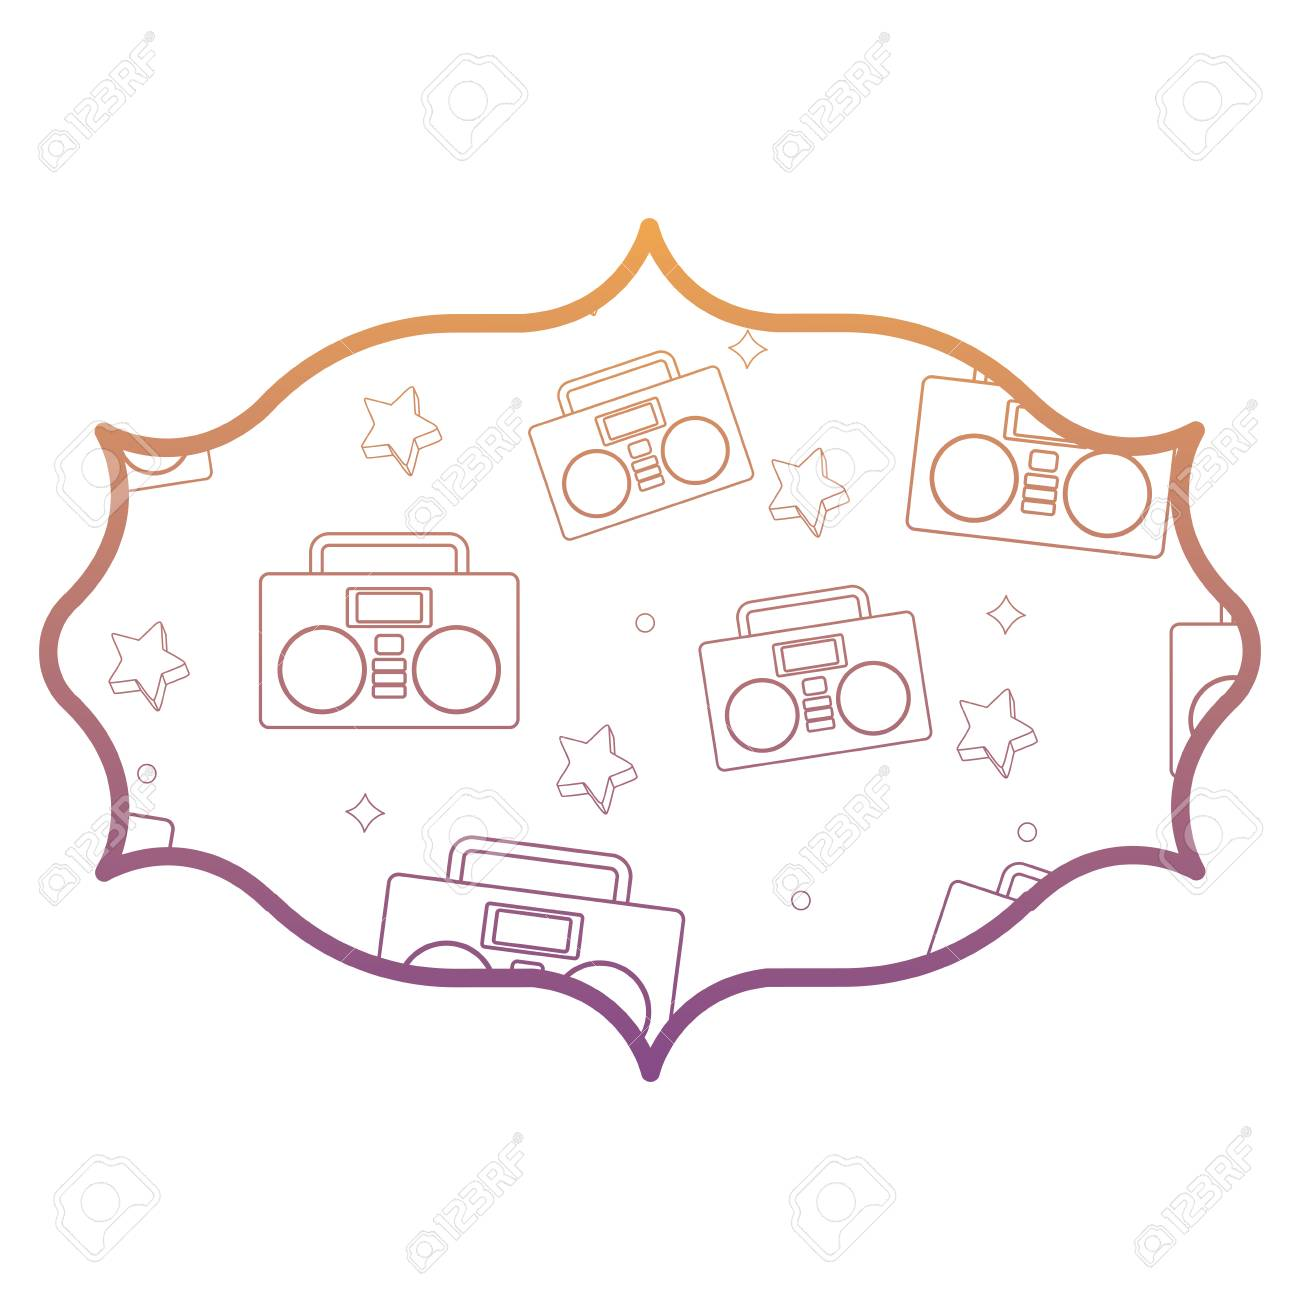 Arabic Frame With Boombox Stereo And Stars Pattern Over White. Arabic Frame With Boombox Stereo And Stars Pattern Over White Background Vector Illustration Stock. Wiring. A Diagram Of A House Arabic At Scoala.co